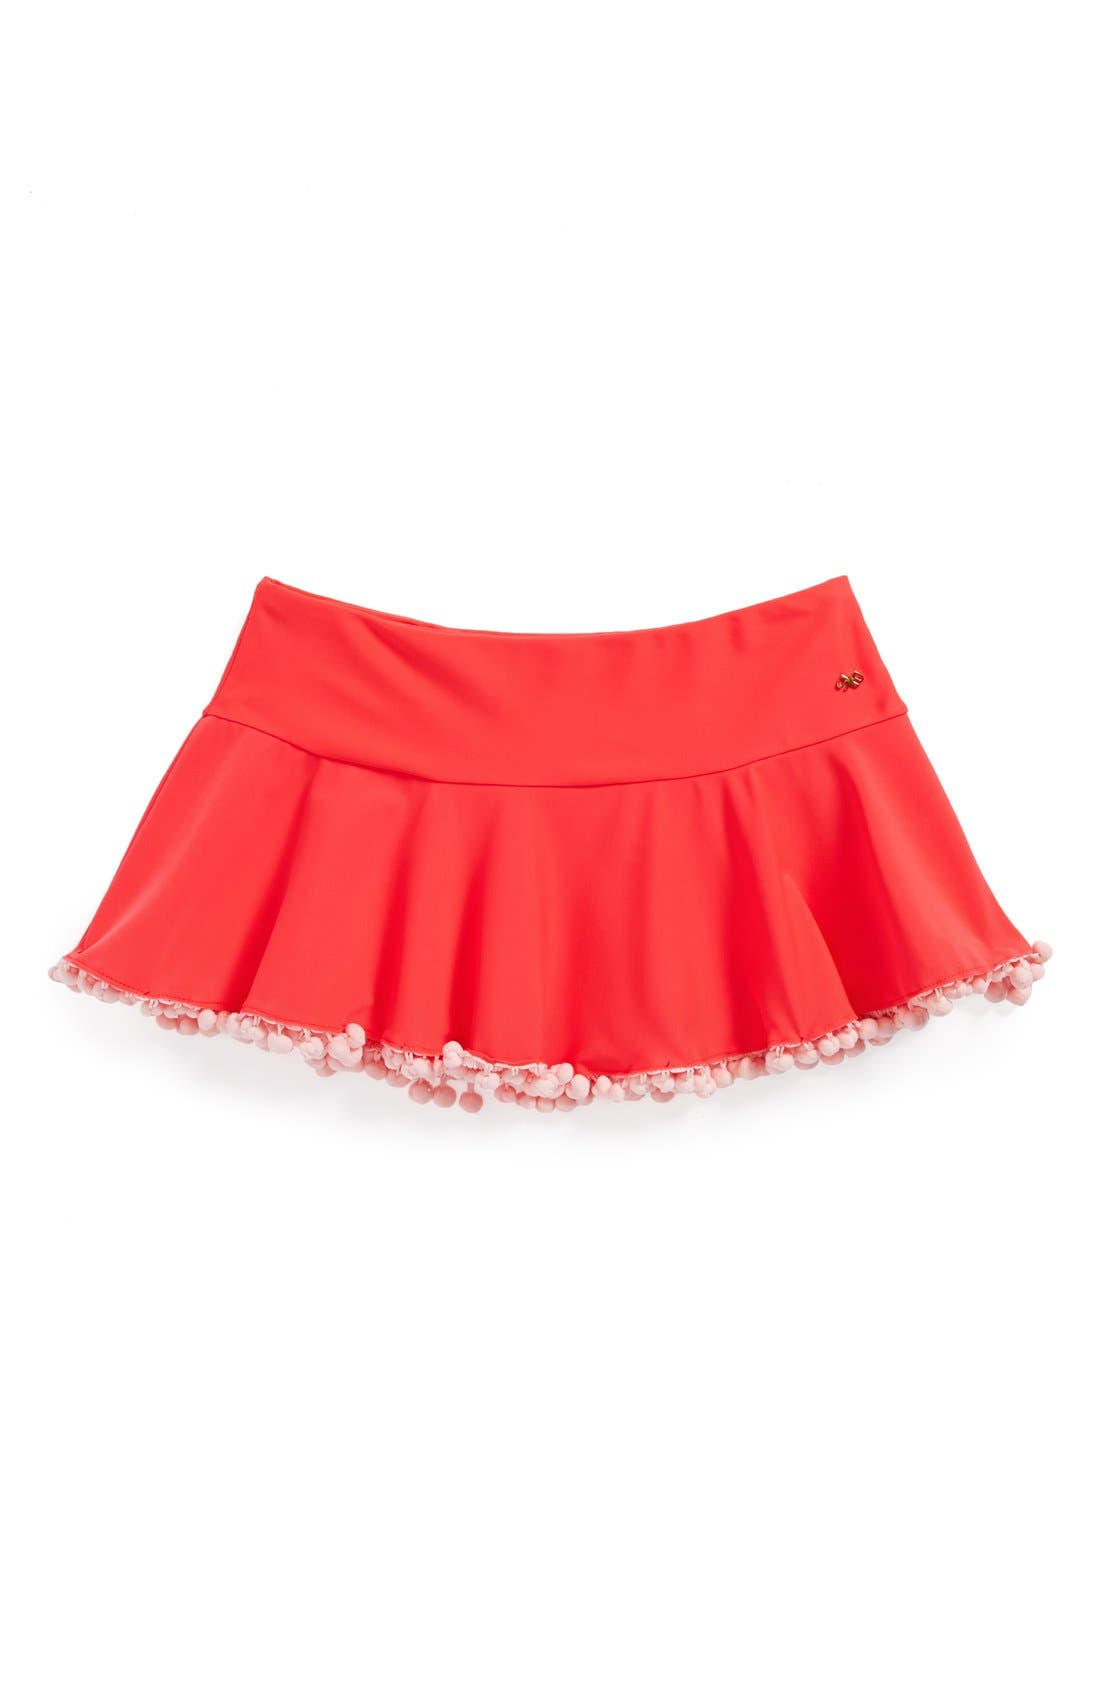 Alternate Image 1 Selected - PilyQ Cover-Up Skirt (Little Girls & Big Girls)